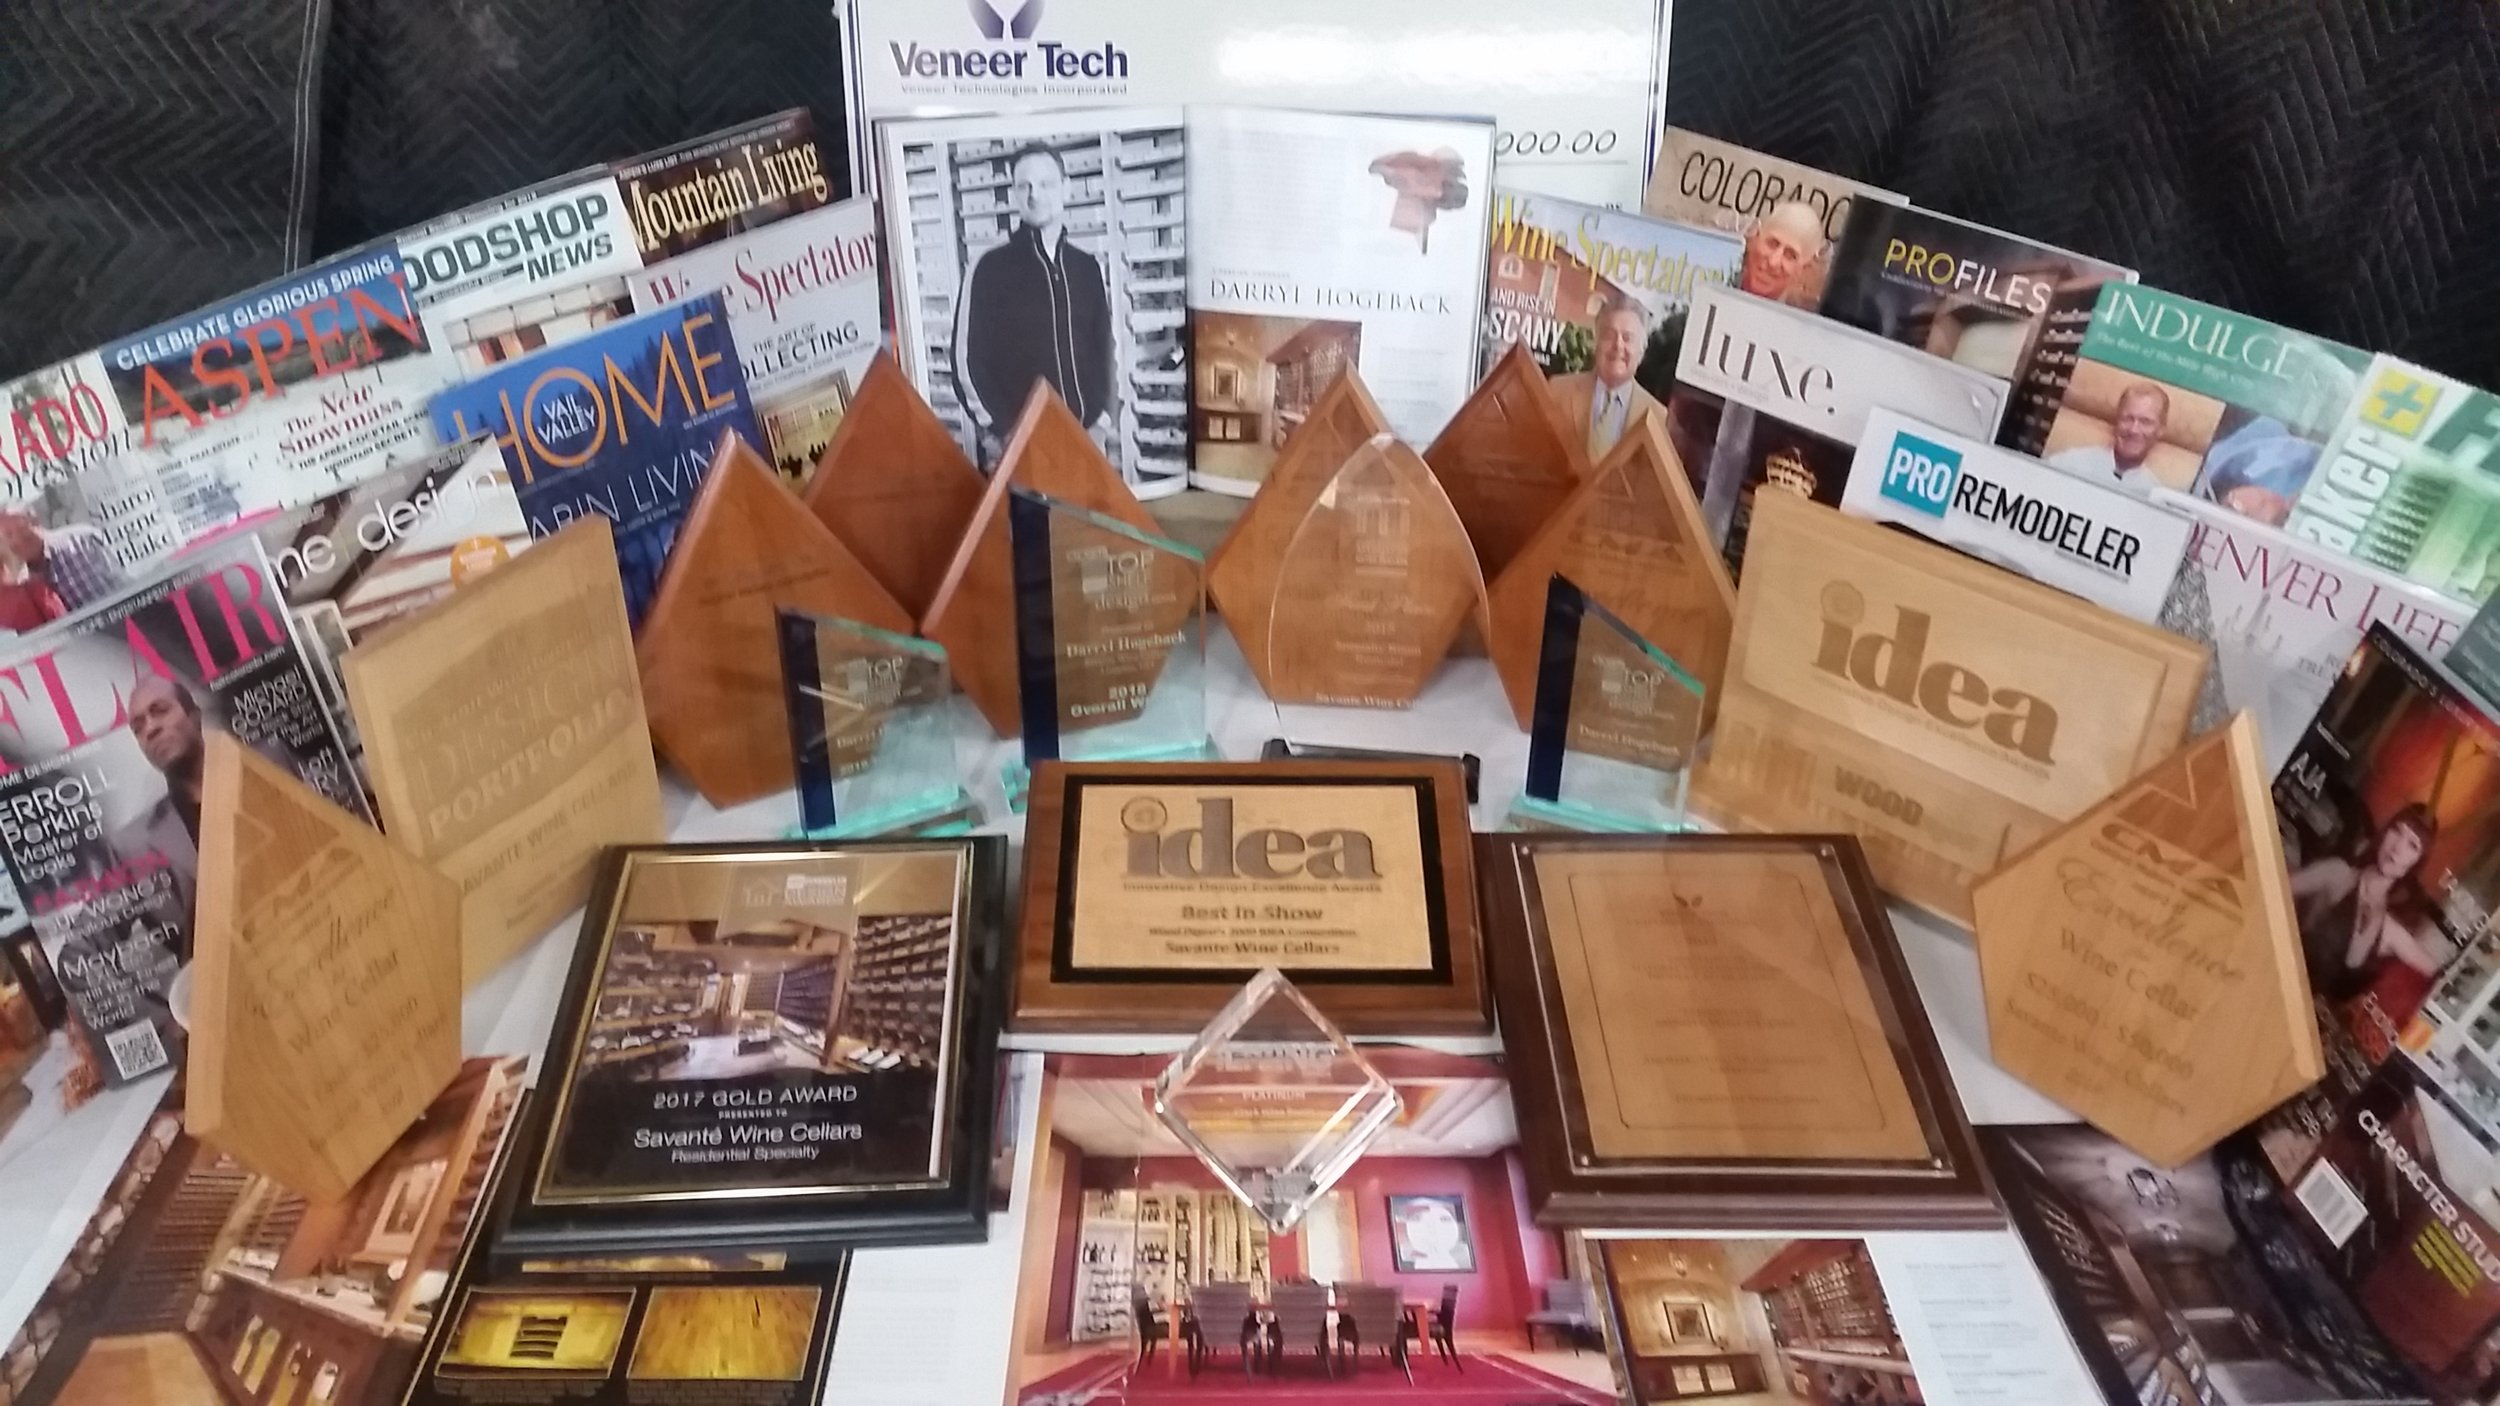 Many awards